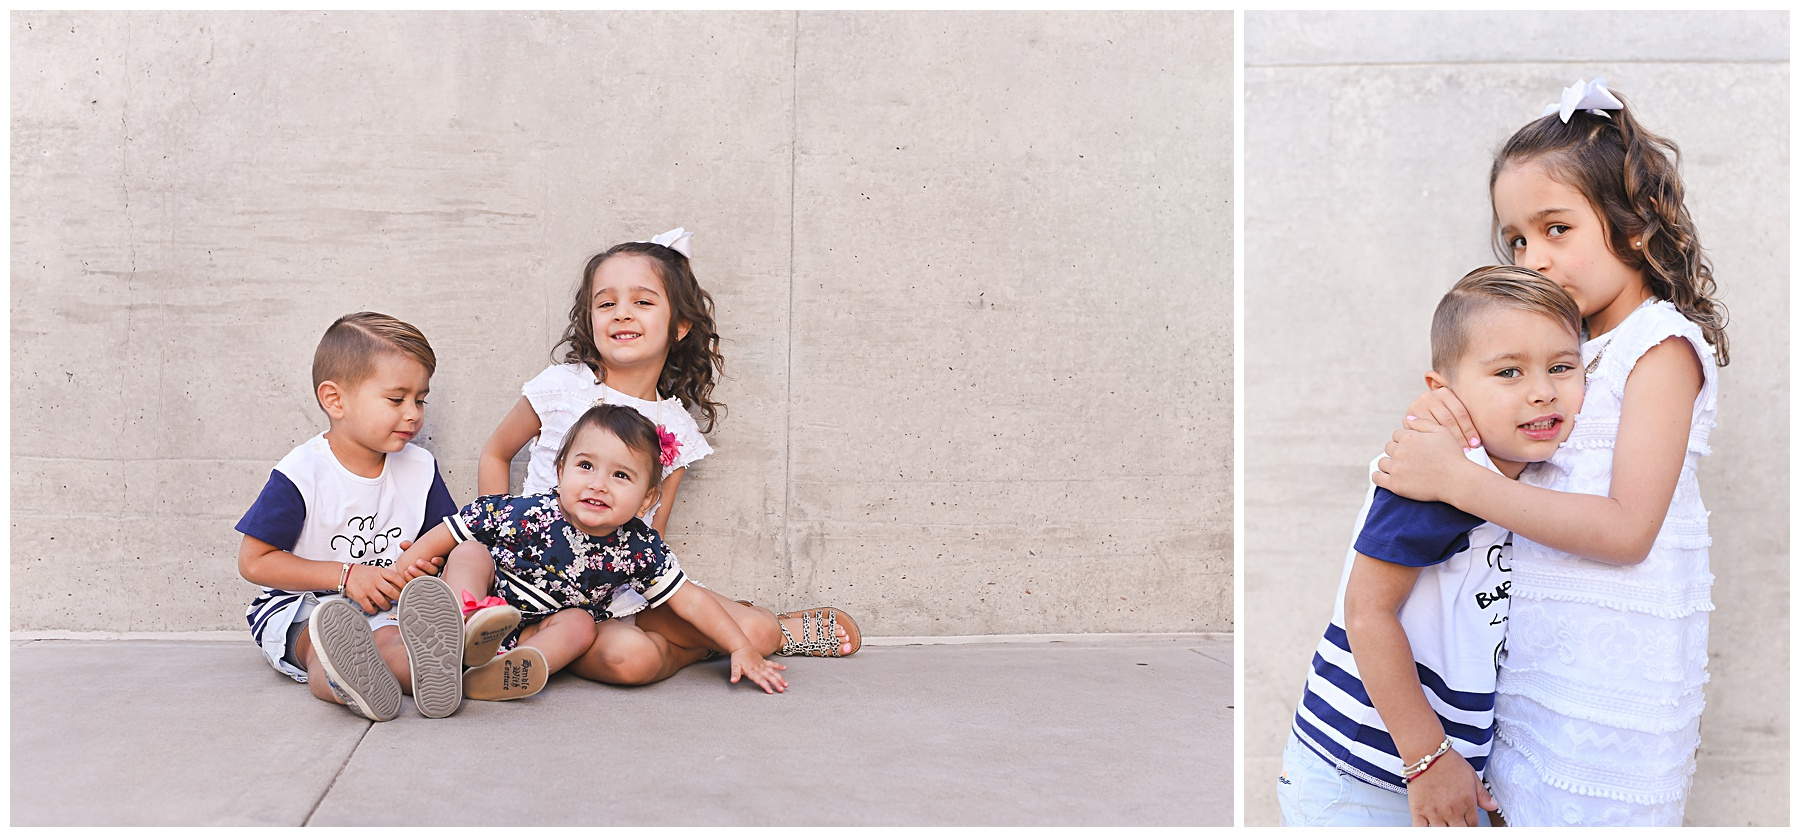 Urban Child Photography session | SweetLife photography